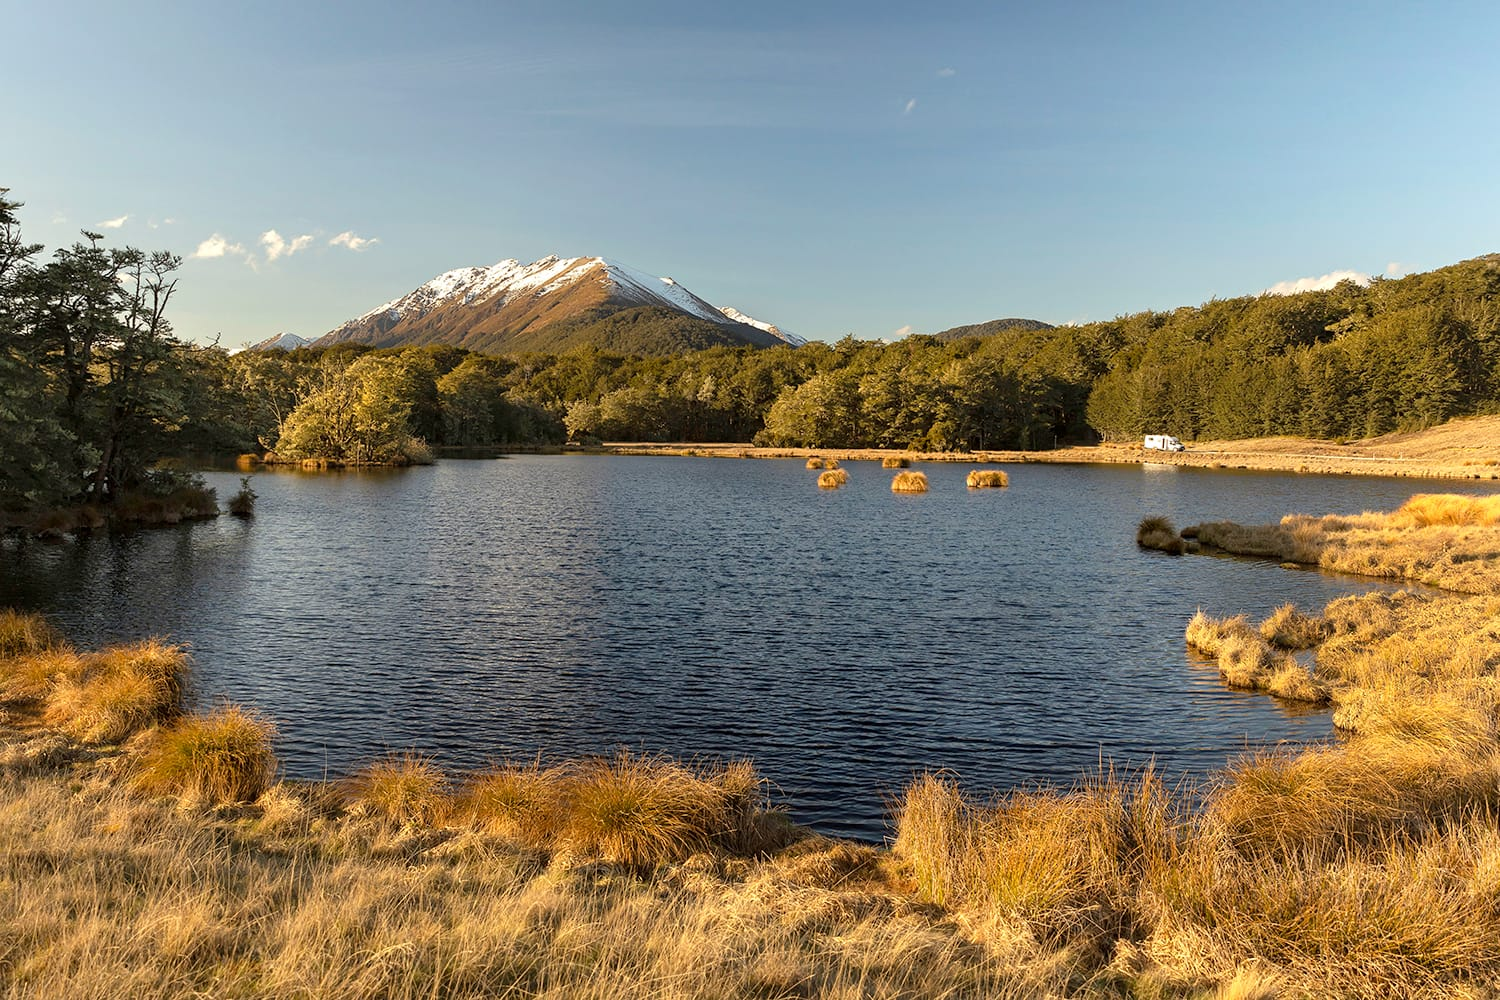 Little Mavora Lake in the south of the South Island of New Zealand with a white motorhome on the far shore with mountains in the background